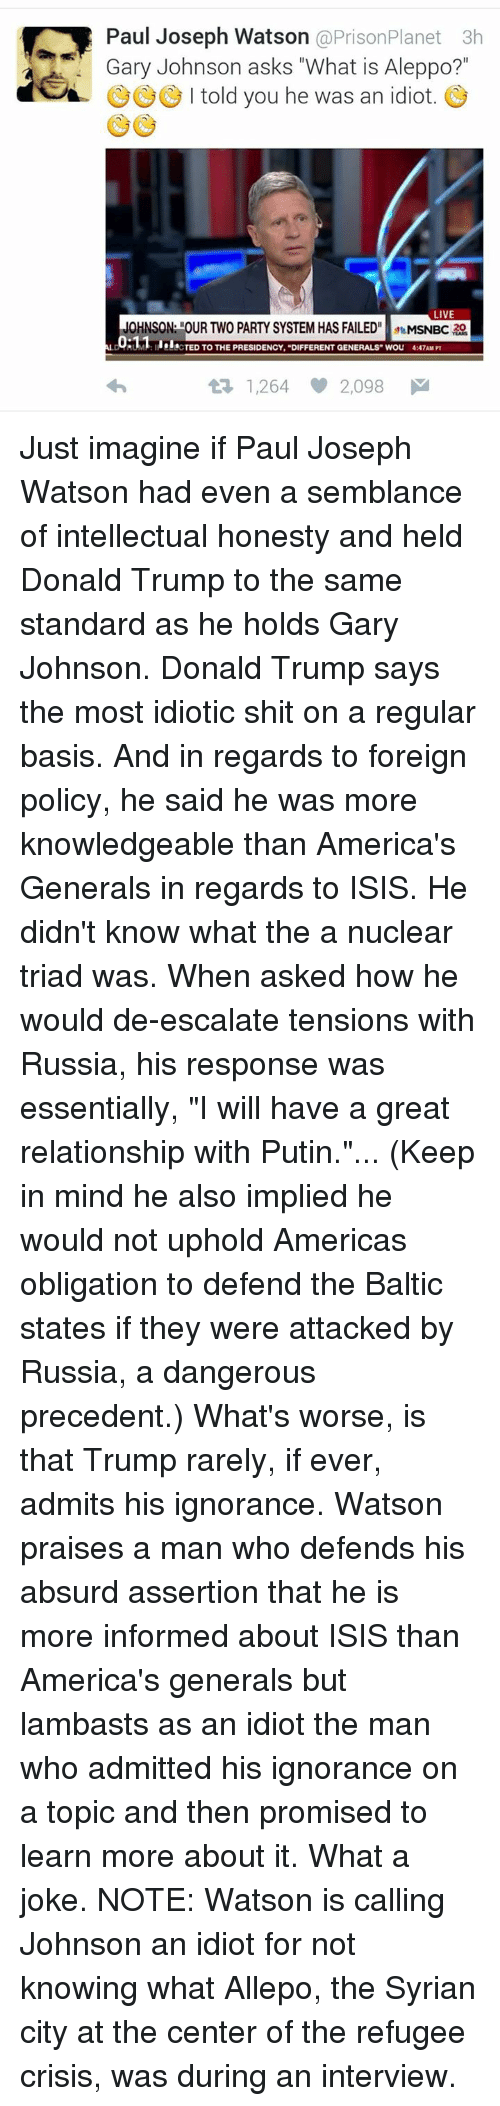 """Putin: Paul Joseph Watson  @Prison Planet 3h  Gary Johnson asks """"What is Aleppo?  a I told you he was an idiot  LIVE  MSNBC 20  Hull CTED TO THE PRESIDENCY, """"DIFFERENT GENERALS WOU 4:47AM PT  1,264 2,098 M Just imagine if Paul Joseph Watson had even a semblance of intellectual honesty and held Donald Trump to the same standard as he holds Gary Johnson.   Donald Trump says the most idiotic shit on a regular basis. And in regards to foreign policy, he said he was more knowledgeable than America's Generals in regards to ISIS. He didn't know what the a nuclear triad was.   When asked how he would de-escalate tensions with Russia, his response was essentially, """"I will have a great relationship with Putin.""""...   (Keep in mind he also implied he would not uphold Americas obligation to defend the Baltic states if they were attacked by Russia, a dangerous precedent.)   What's worse, is that Trump rarely, if ever, admits his ignorance.   Watson praises a man who defends his absurd assertion that he is more informed about ISIS than America's generals but lambasts as an idiot the man who admitted his ignorance on a topic and then promised to learn more about it.   What a joke.   NOTE: Watson is calling Johnson an idiot for not knowing what Allepo, the Syrian city at the center of the refugee crisis, was during an interview."""